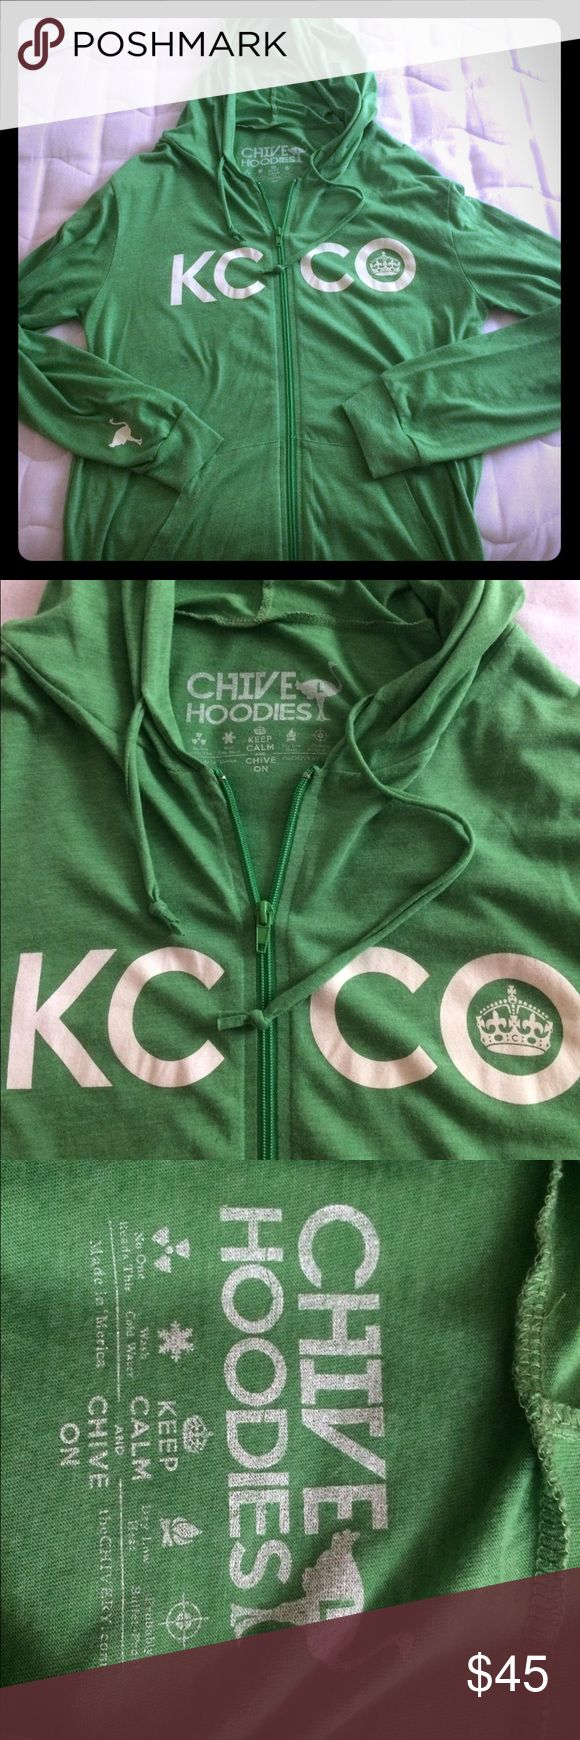 The Chive Spring Hoodie The Chive spring hoodie. Size large. In excellent condition from a smoke free home. Lightweight and perfect for a cool summer evening. Chive On! TheChive Shirts Sweatshirts & Hoodies